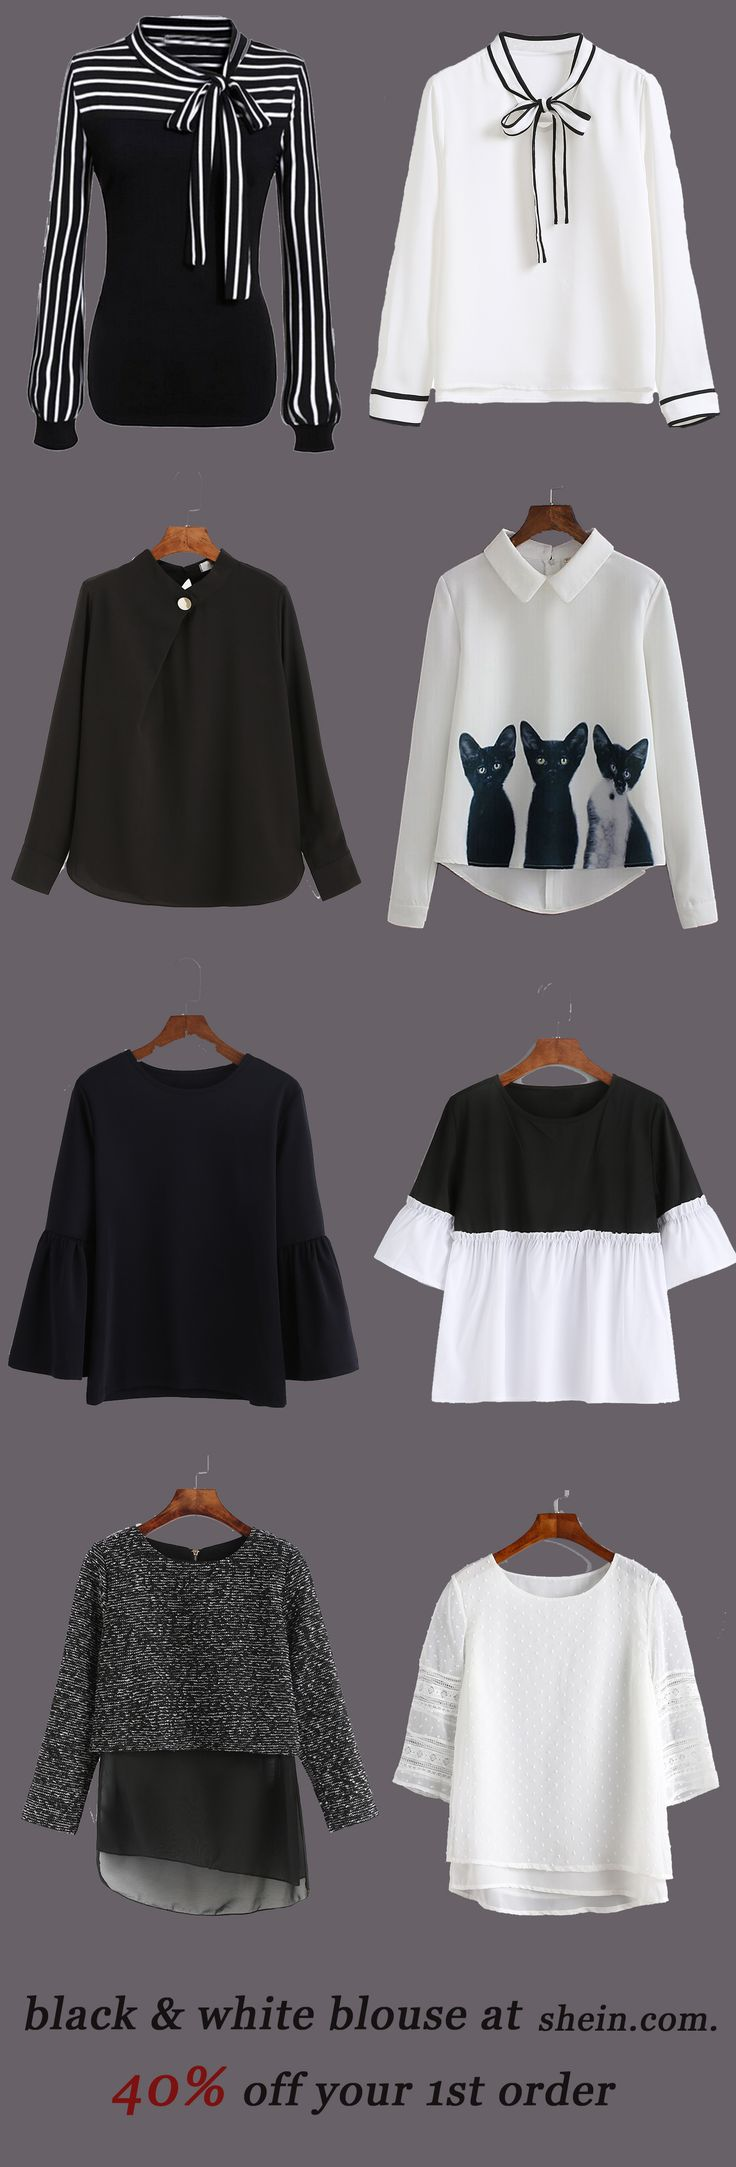 Black & white blouse collection for women. 40% off your 1st order!